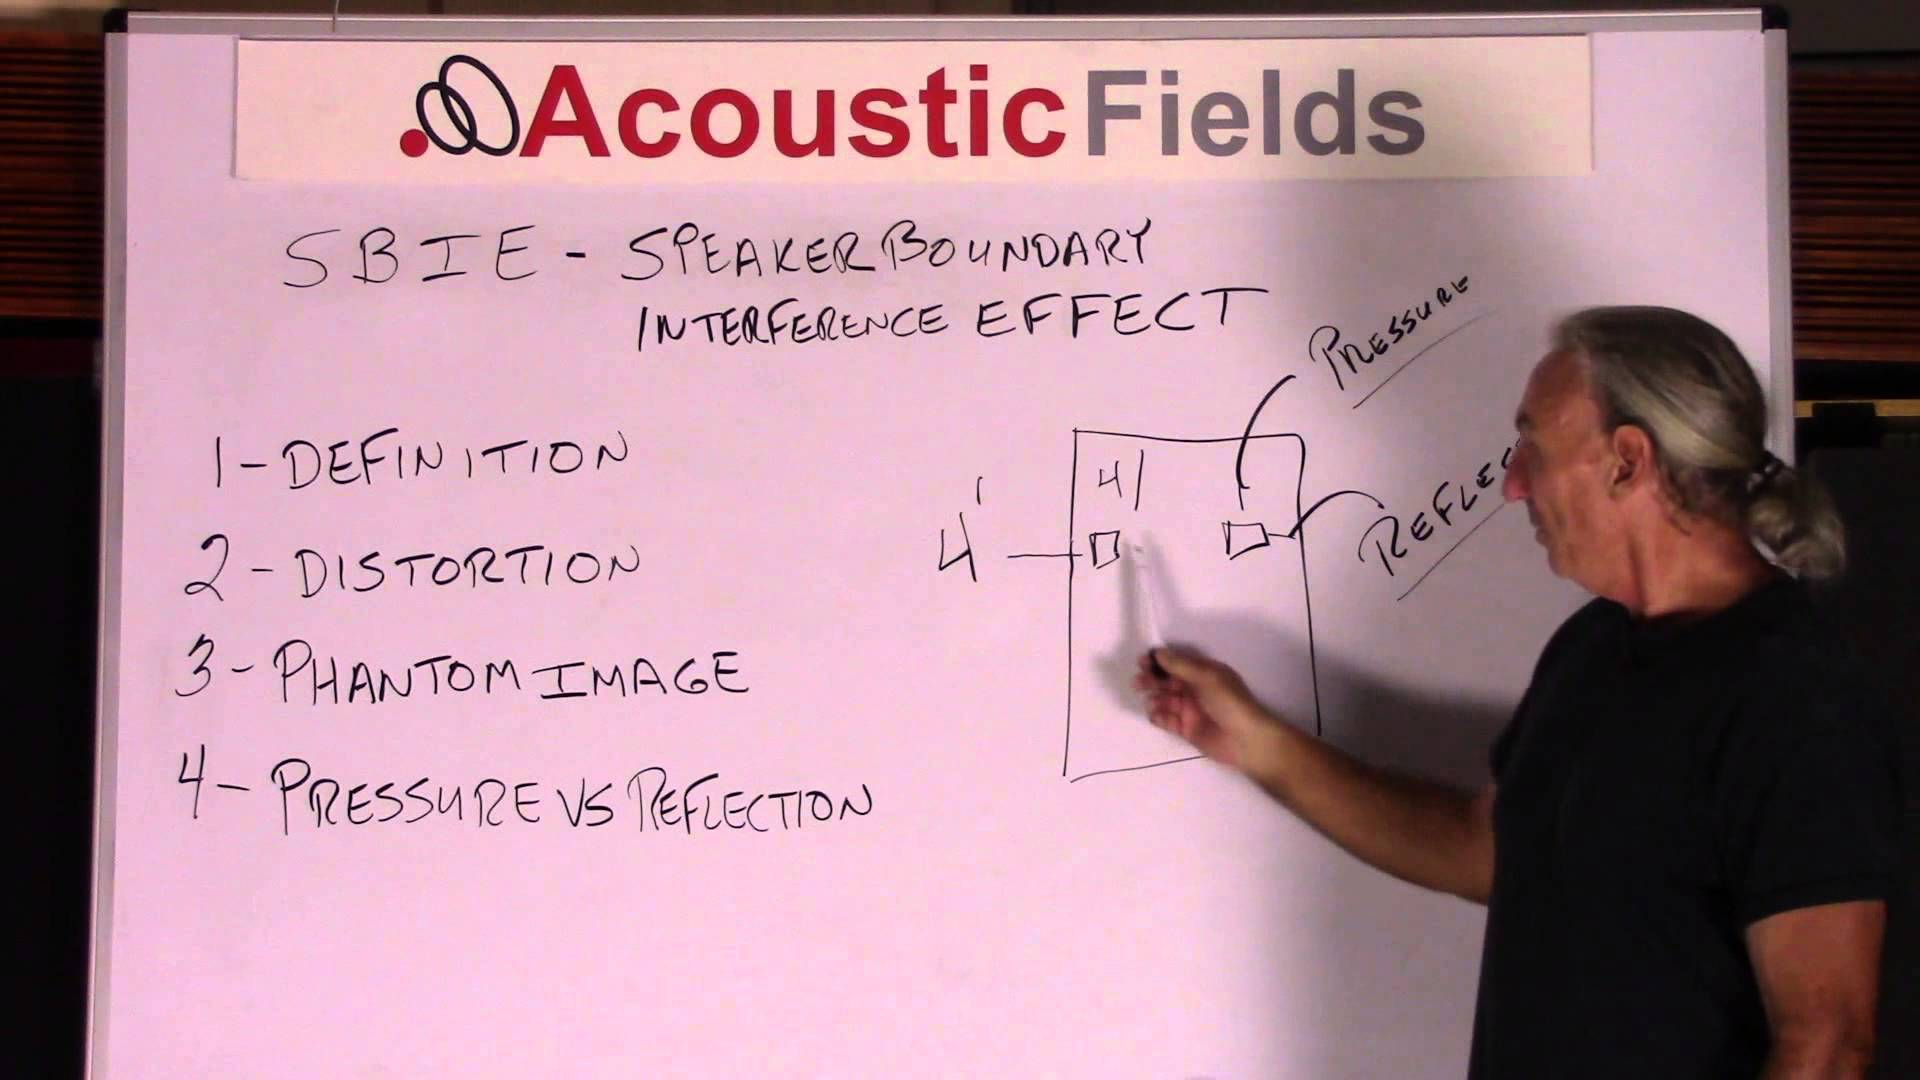 Speaker Boundary Interference Effect & How It Applies To Room Acoustics